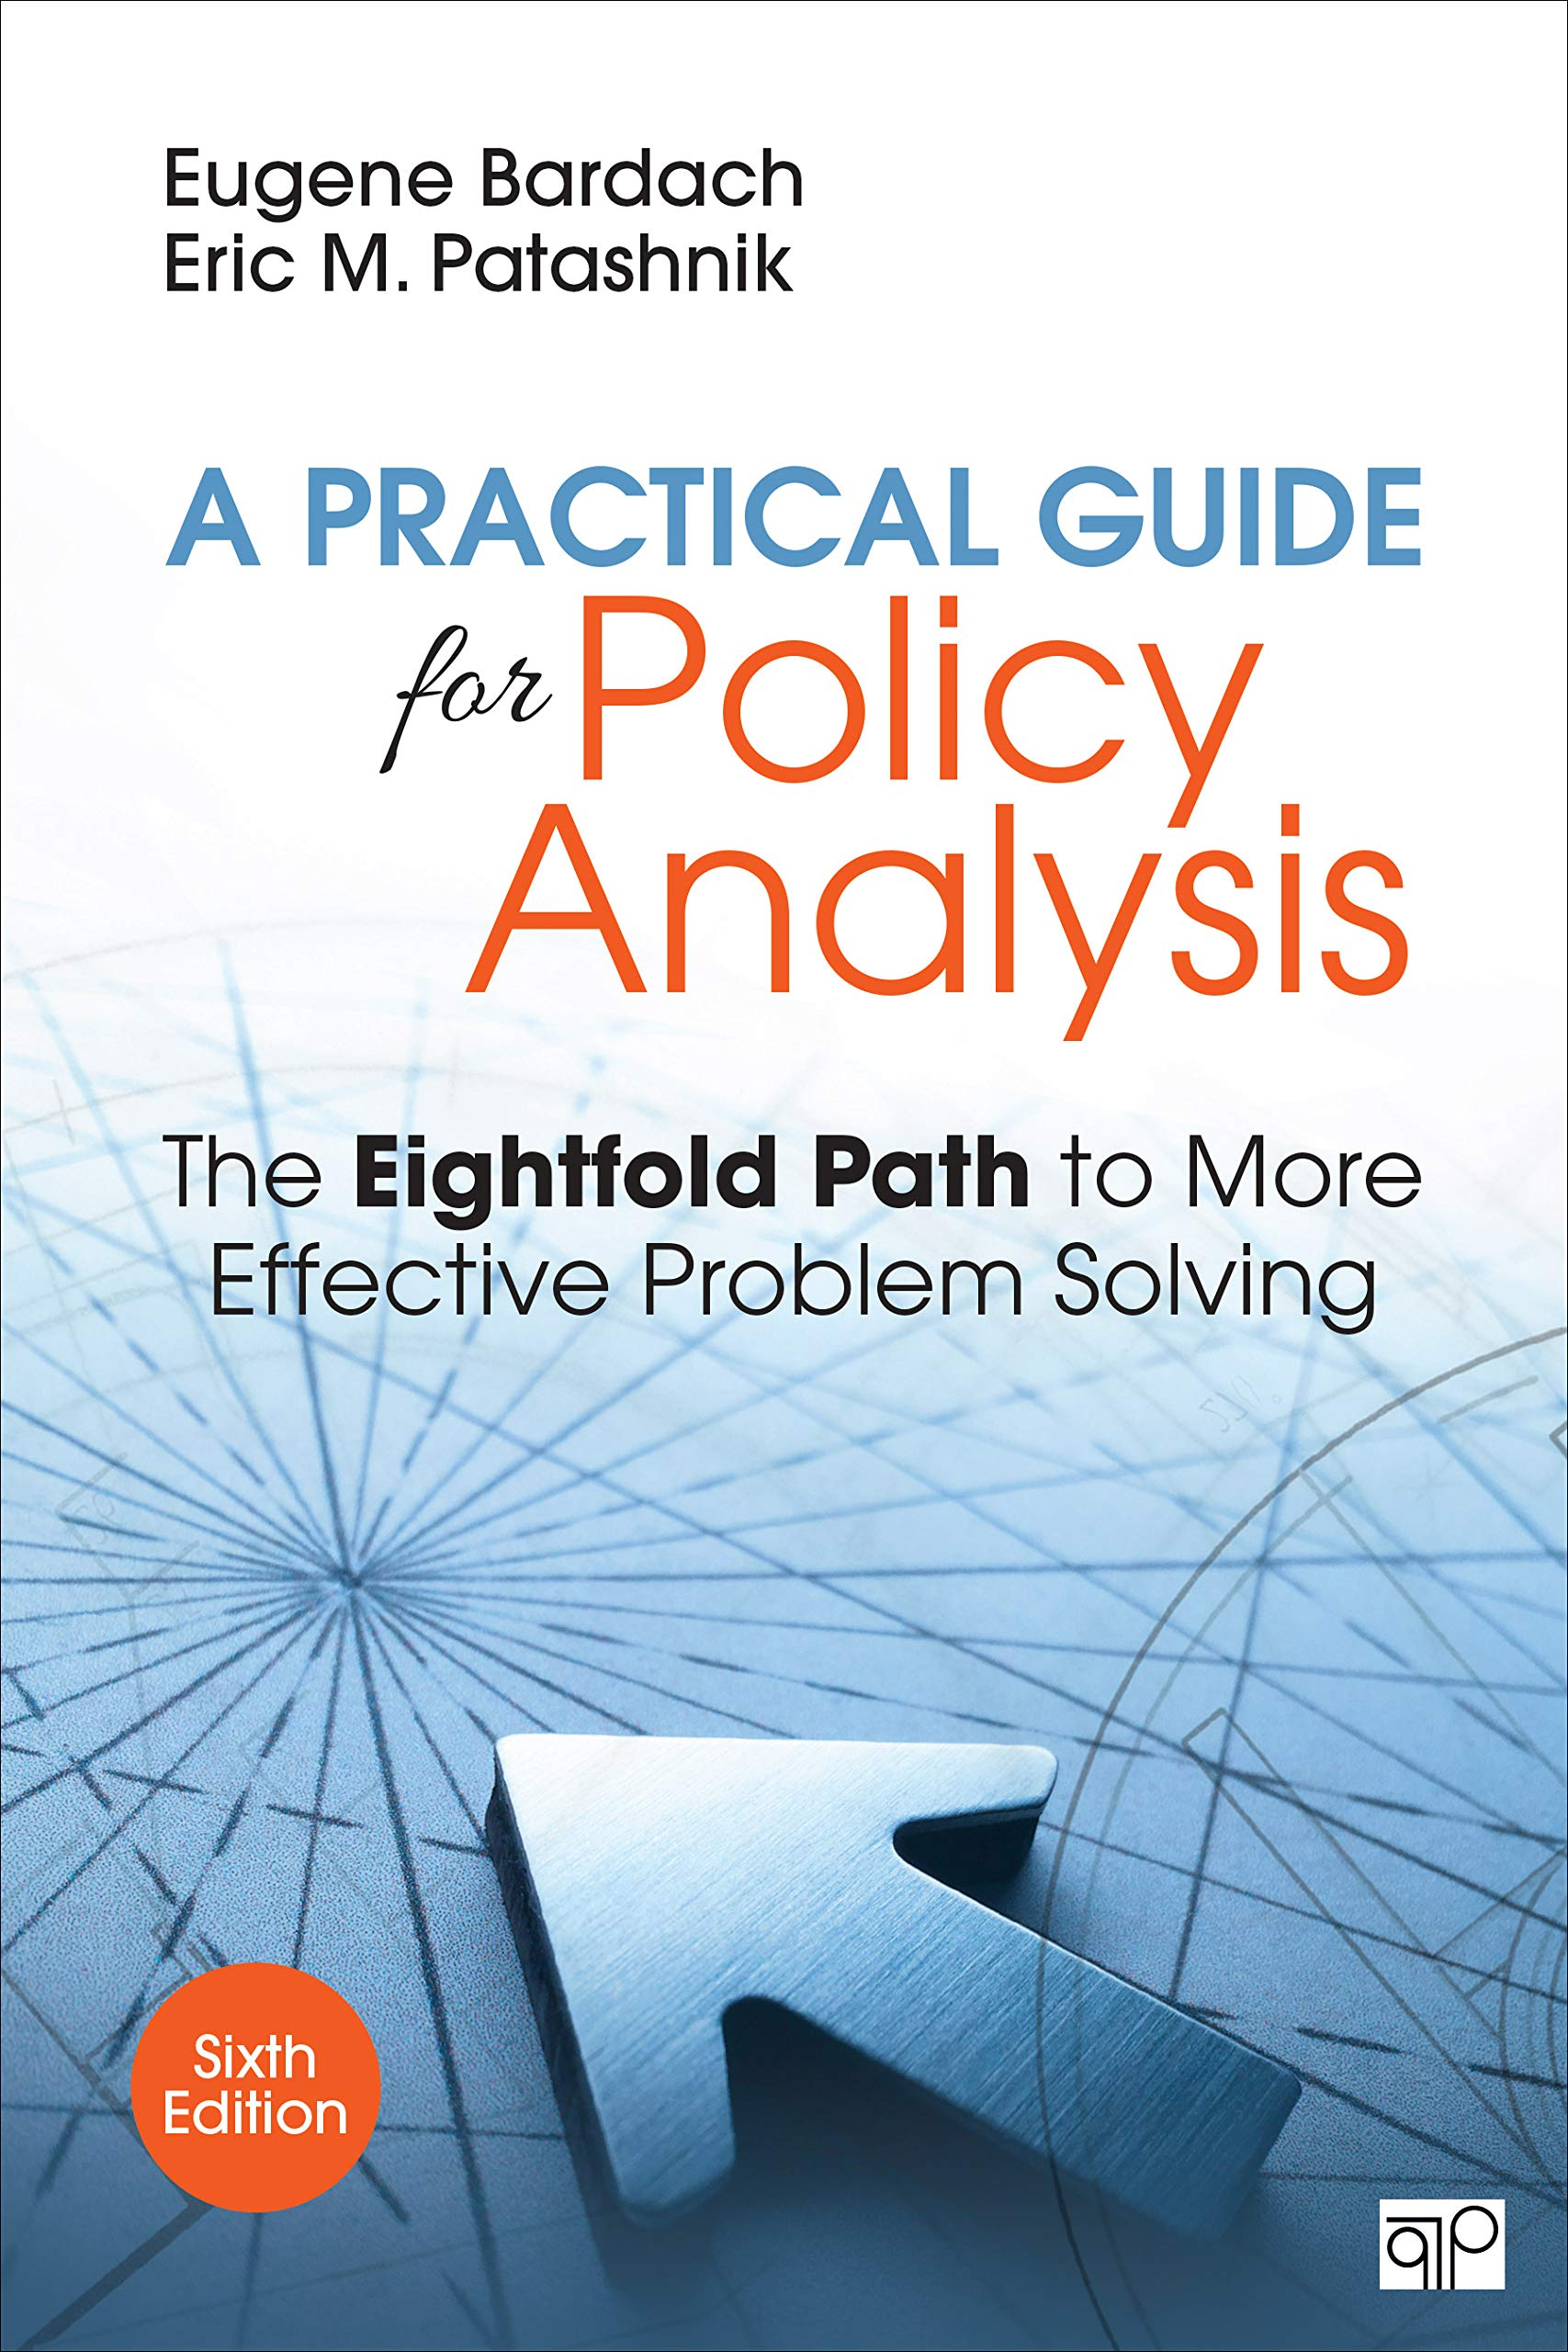 Image OfA Practical Guide For Policy Analysis: The Eightfold Path To More Effective Problem Solving